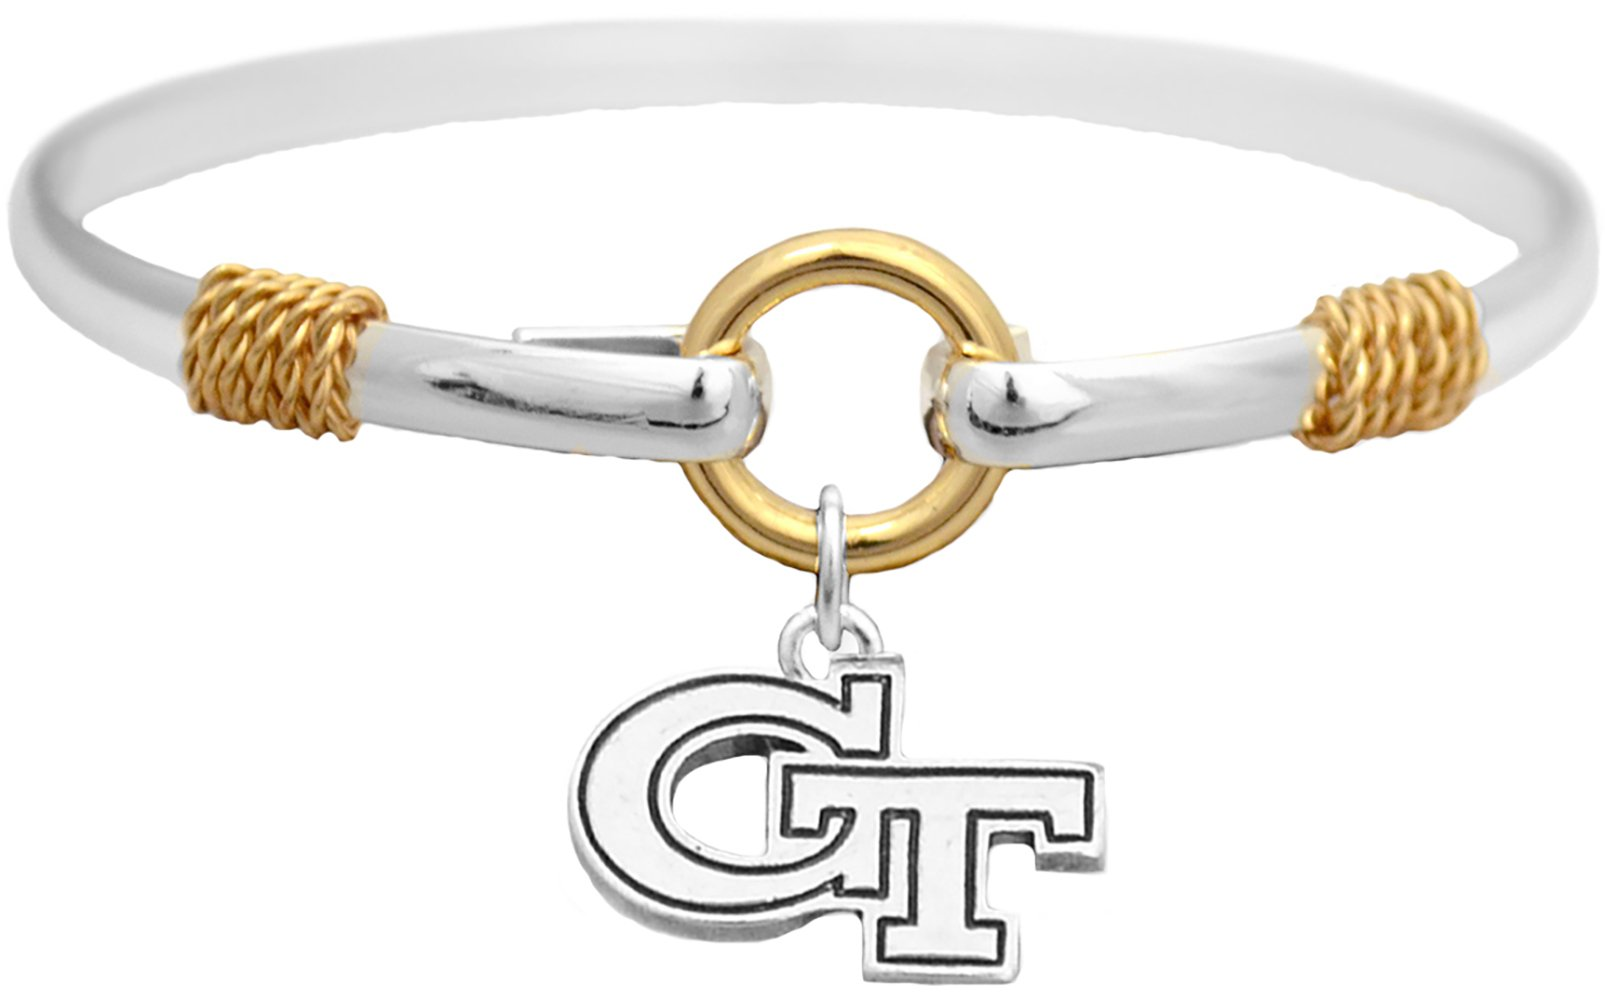 Sports Accessory Store Georgia Tech Yellow Jackets Two Tone Silver Gold Cuff Bracelet Charm Jewelry GT by Sports Accessory Store